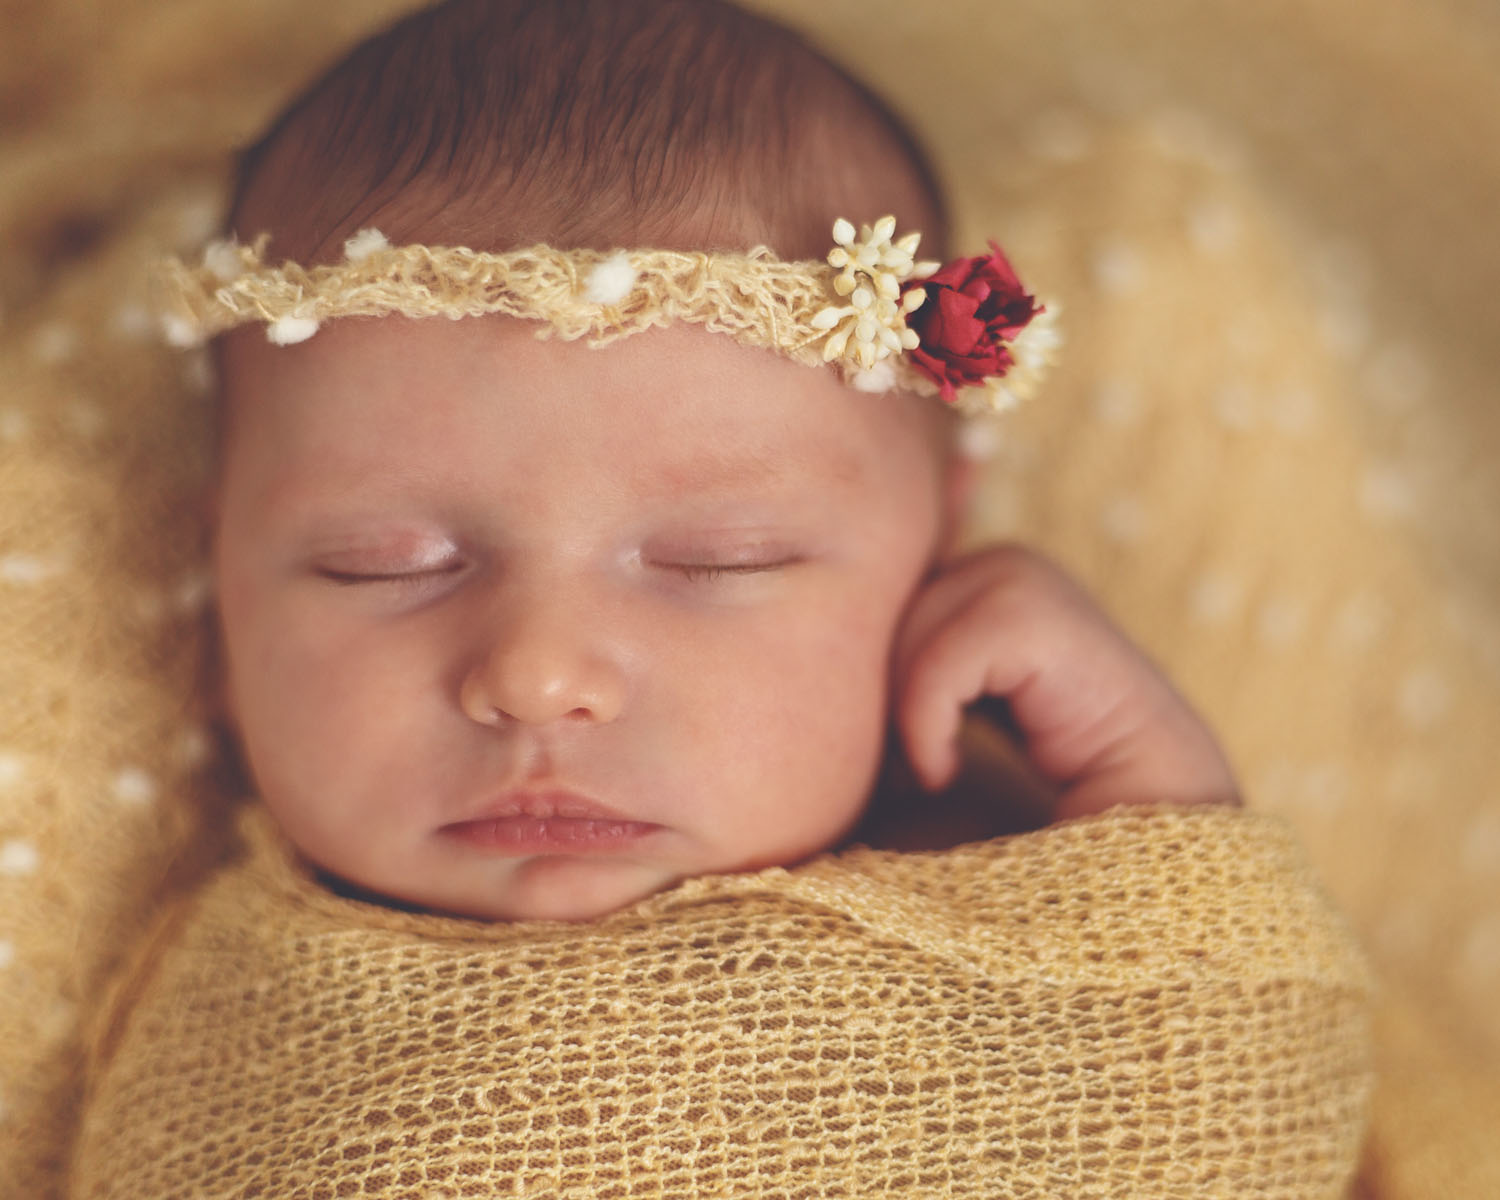 professional newborn photography of baby girl with yellow blanket and a yellow headband with a red flower